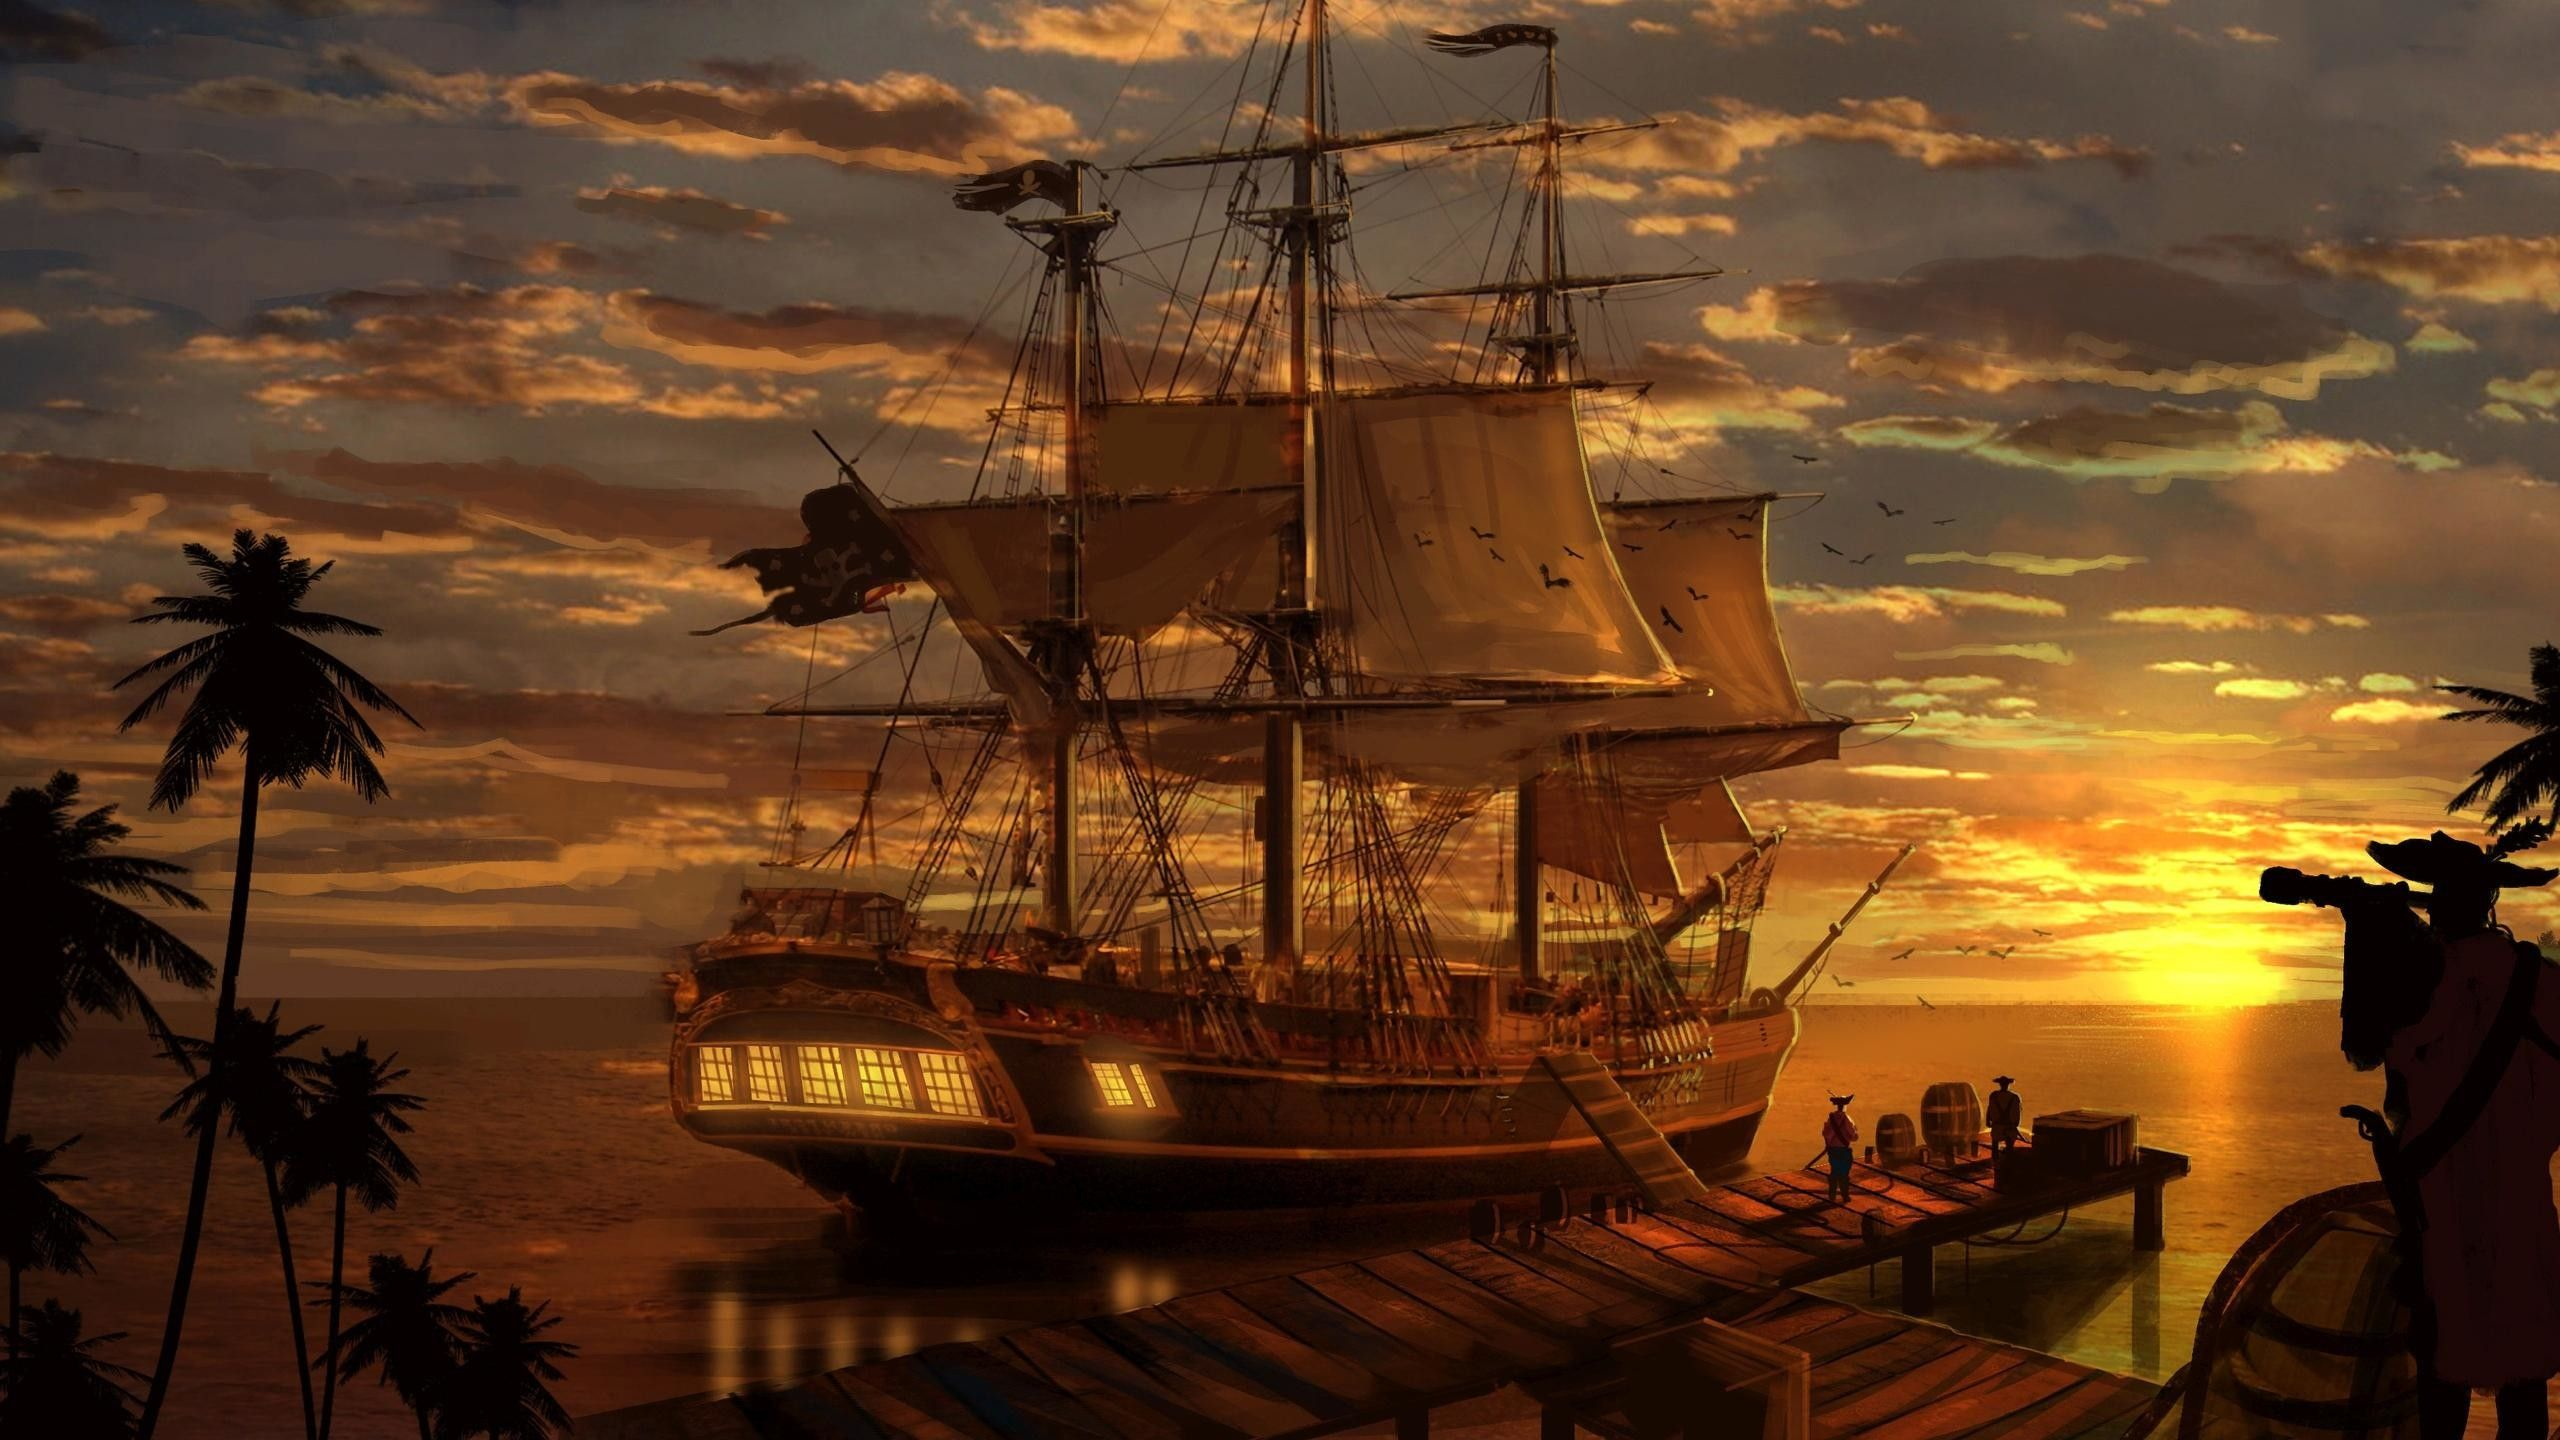 pirate ship wallpaper hd resolution on wallpaper 1080p hd